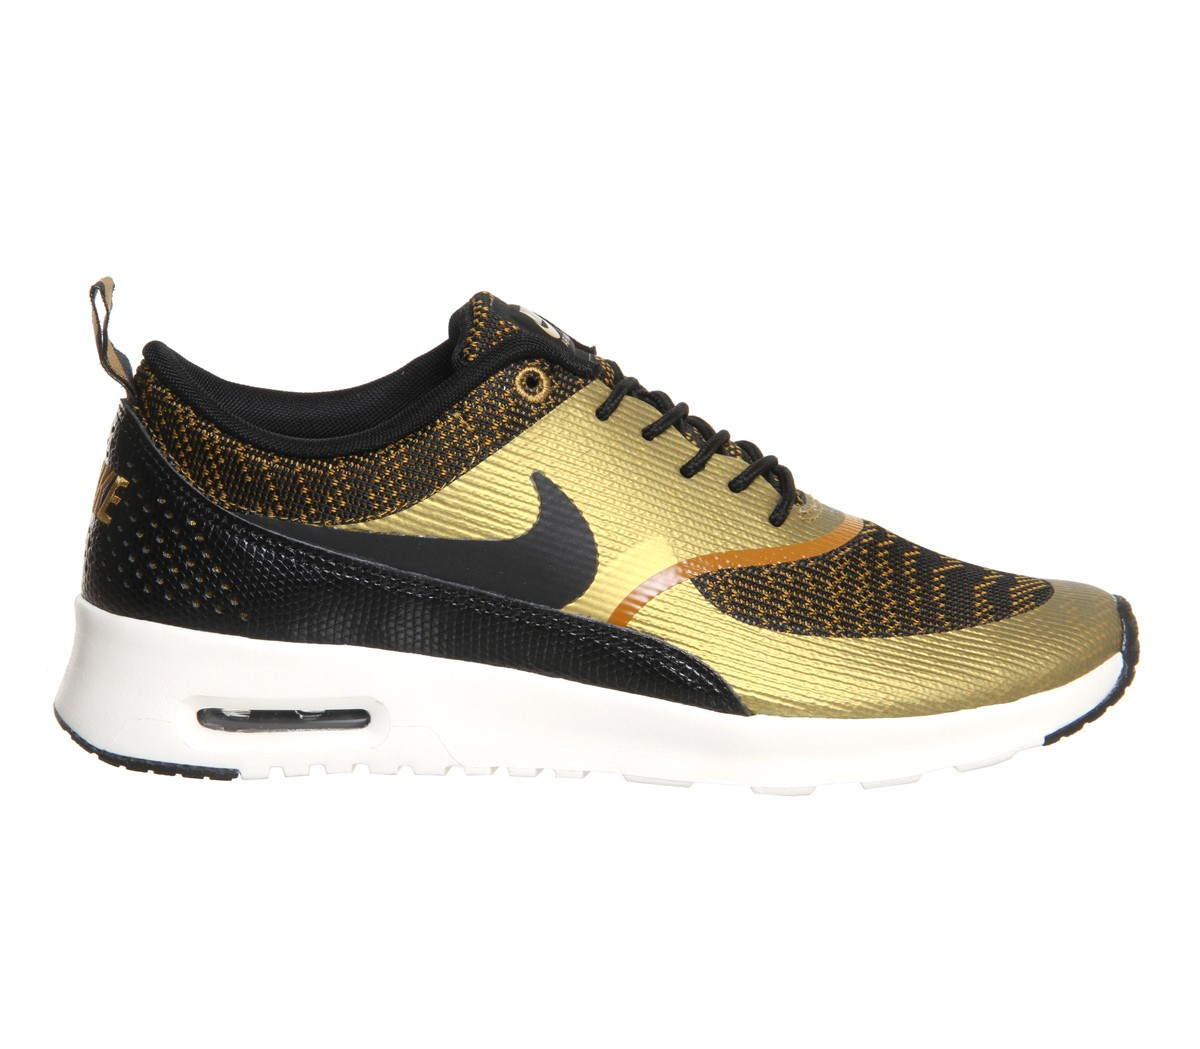 "Womens Nike Air Max Thea Jacquard ""Bronzine Pack"" Running Shoes Bronze/Black/Sail - Style 718646 700"